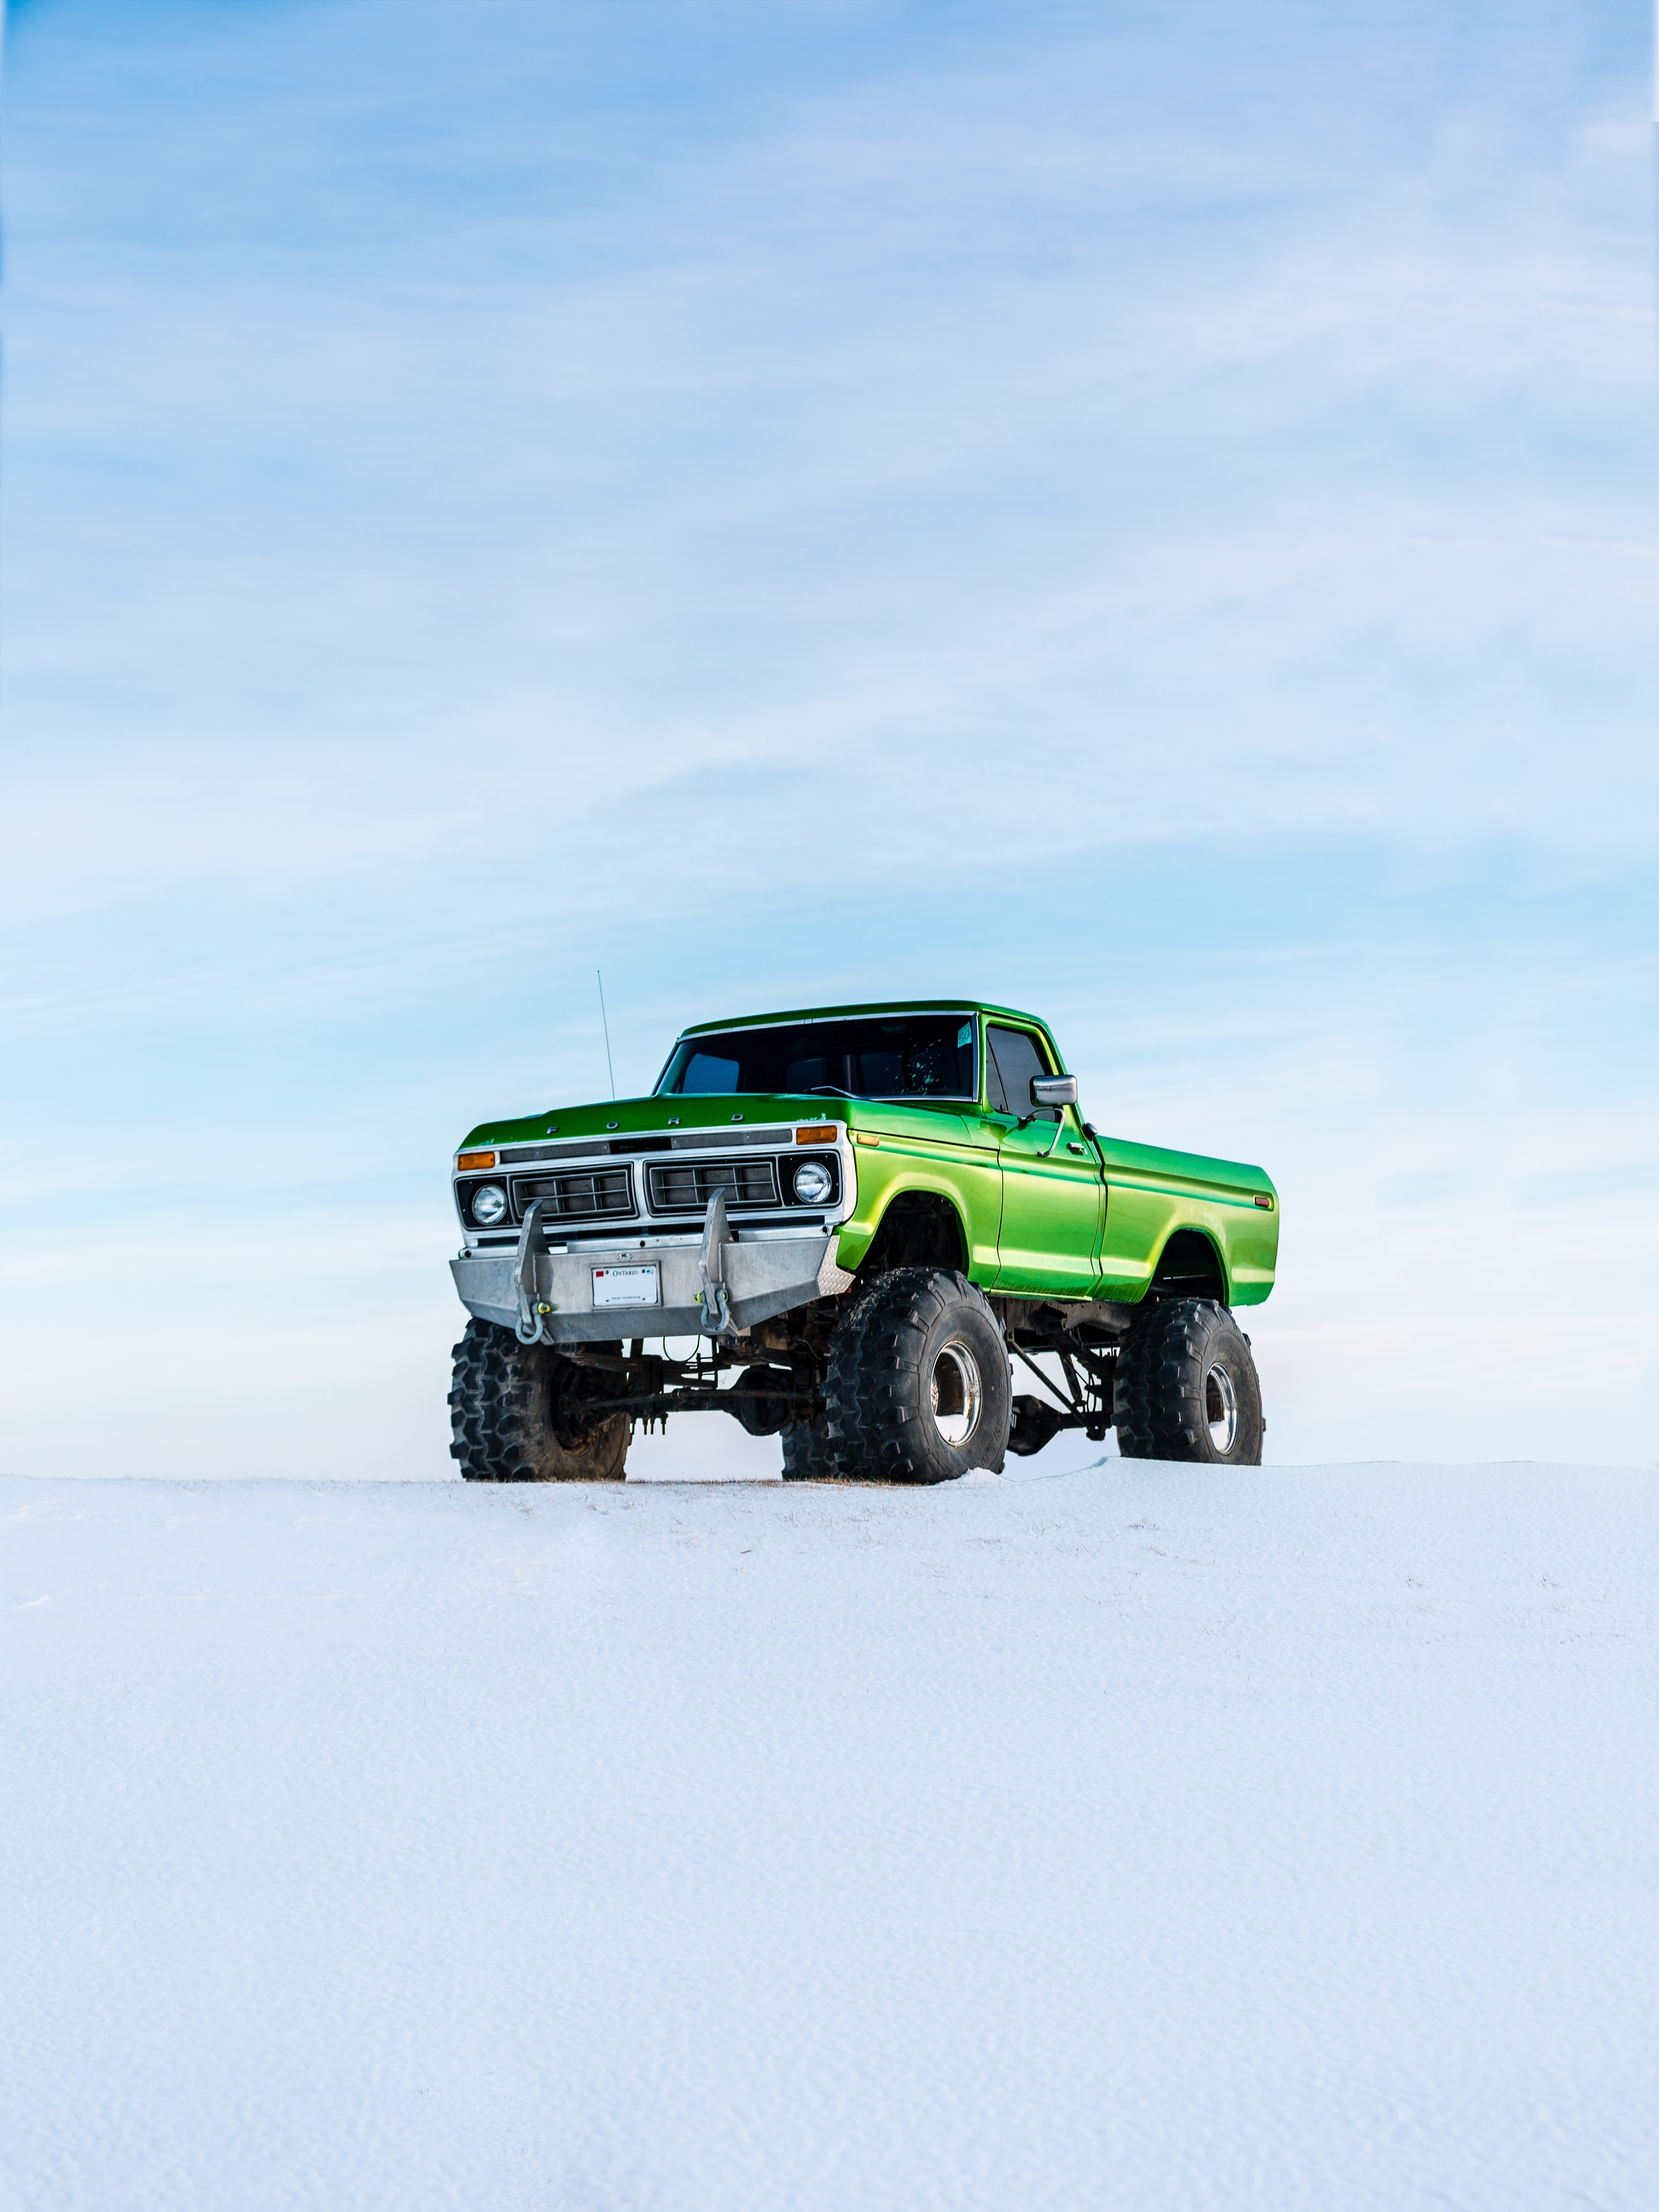 green off-road vehicle on snow during winter season